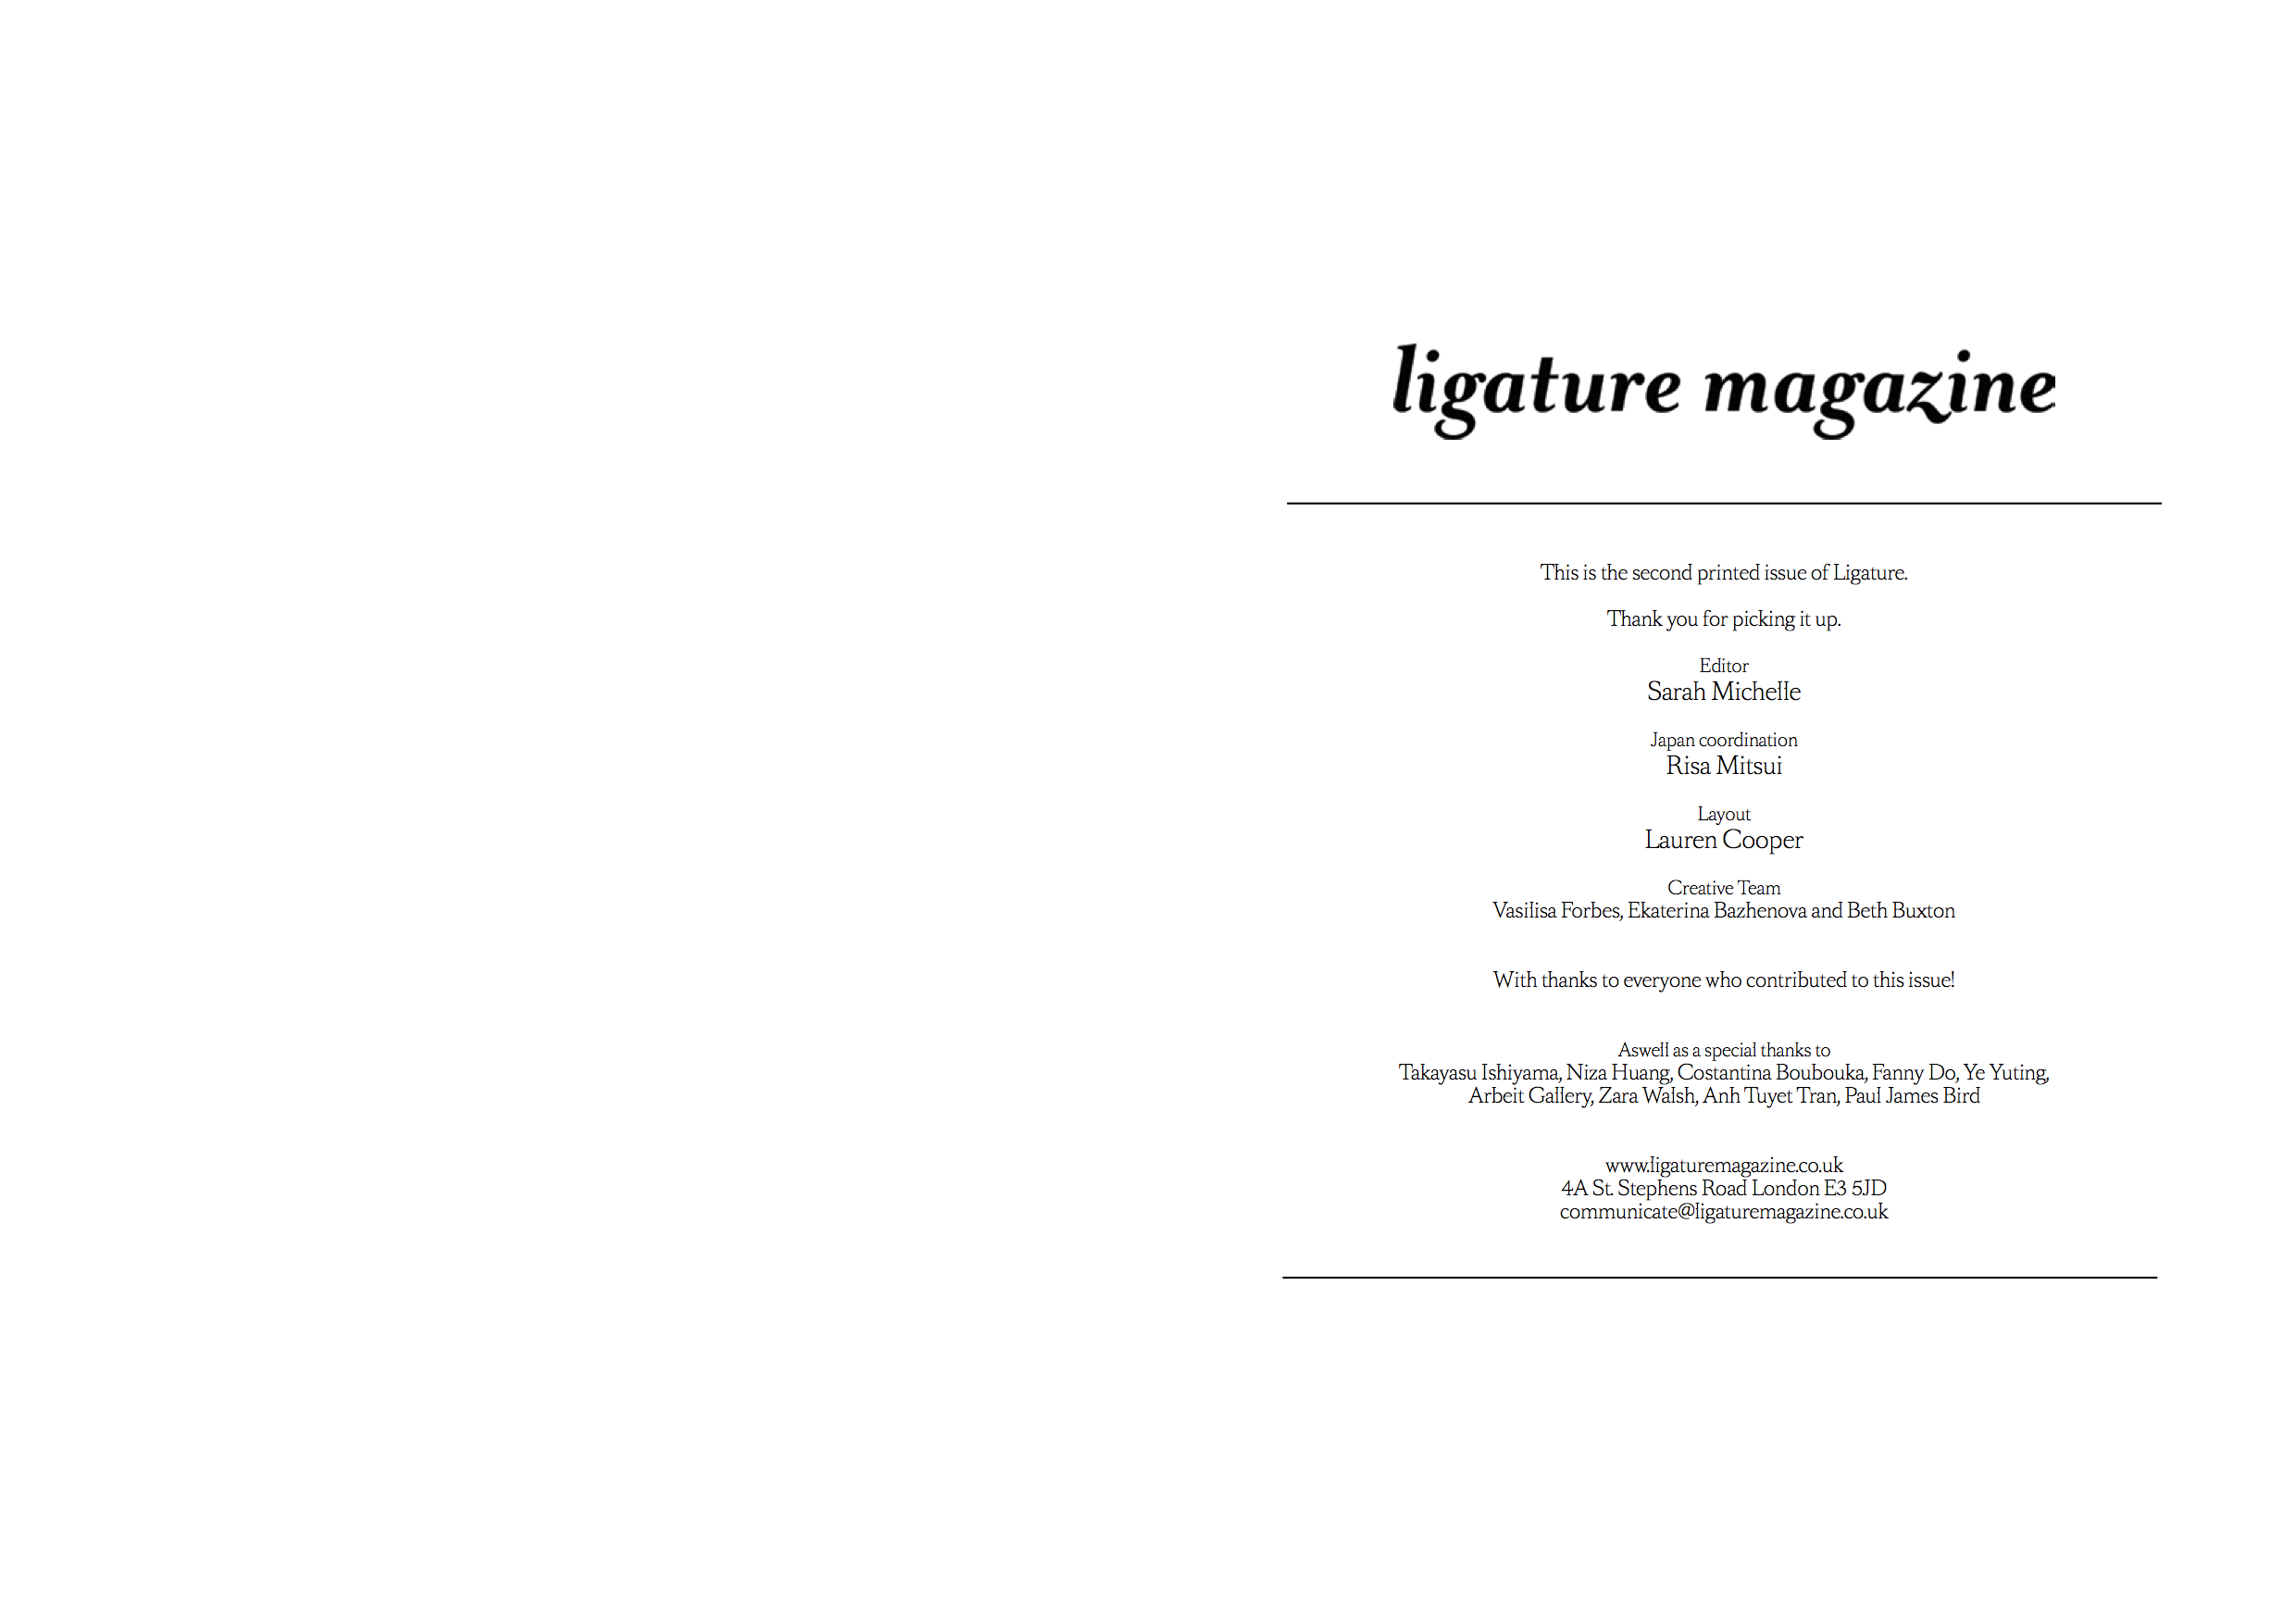 Ligature_Magazine2.jpg